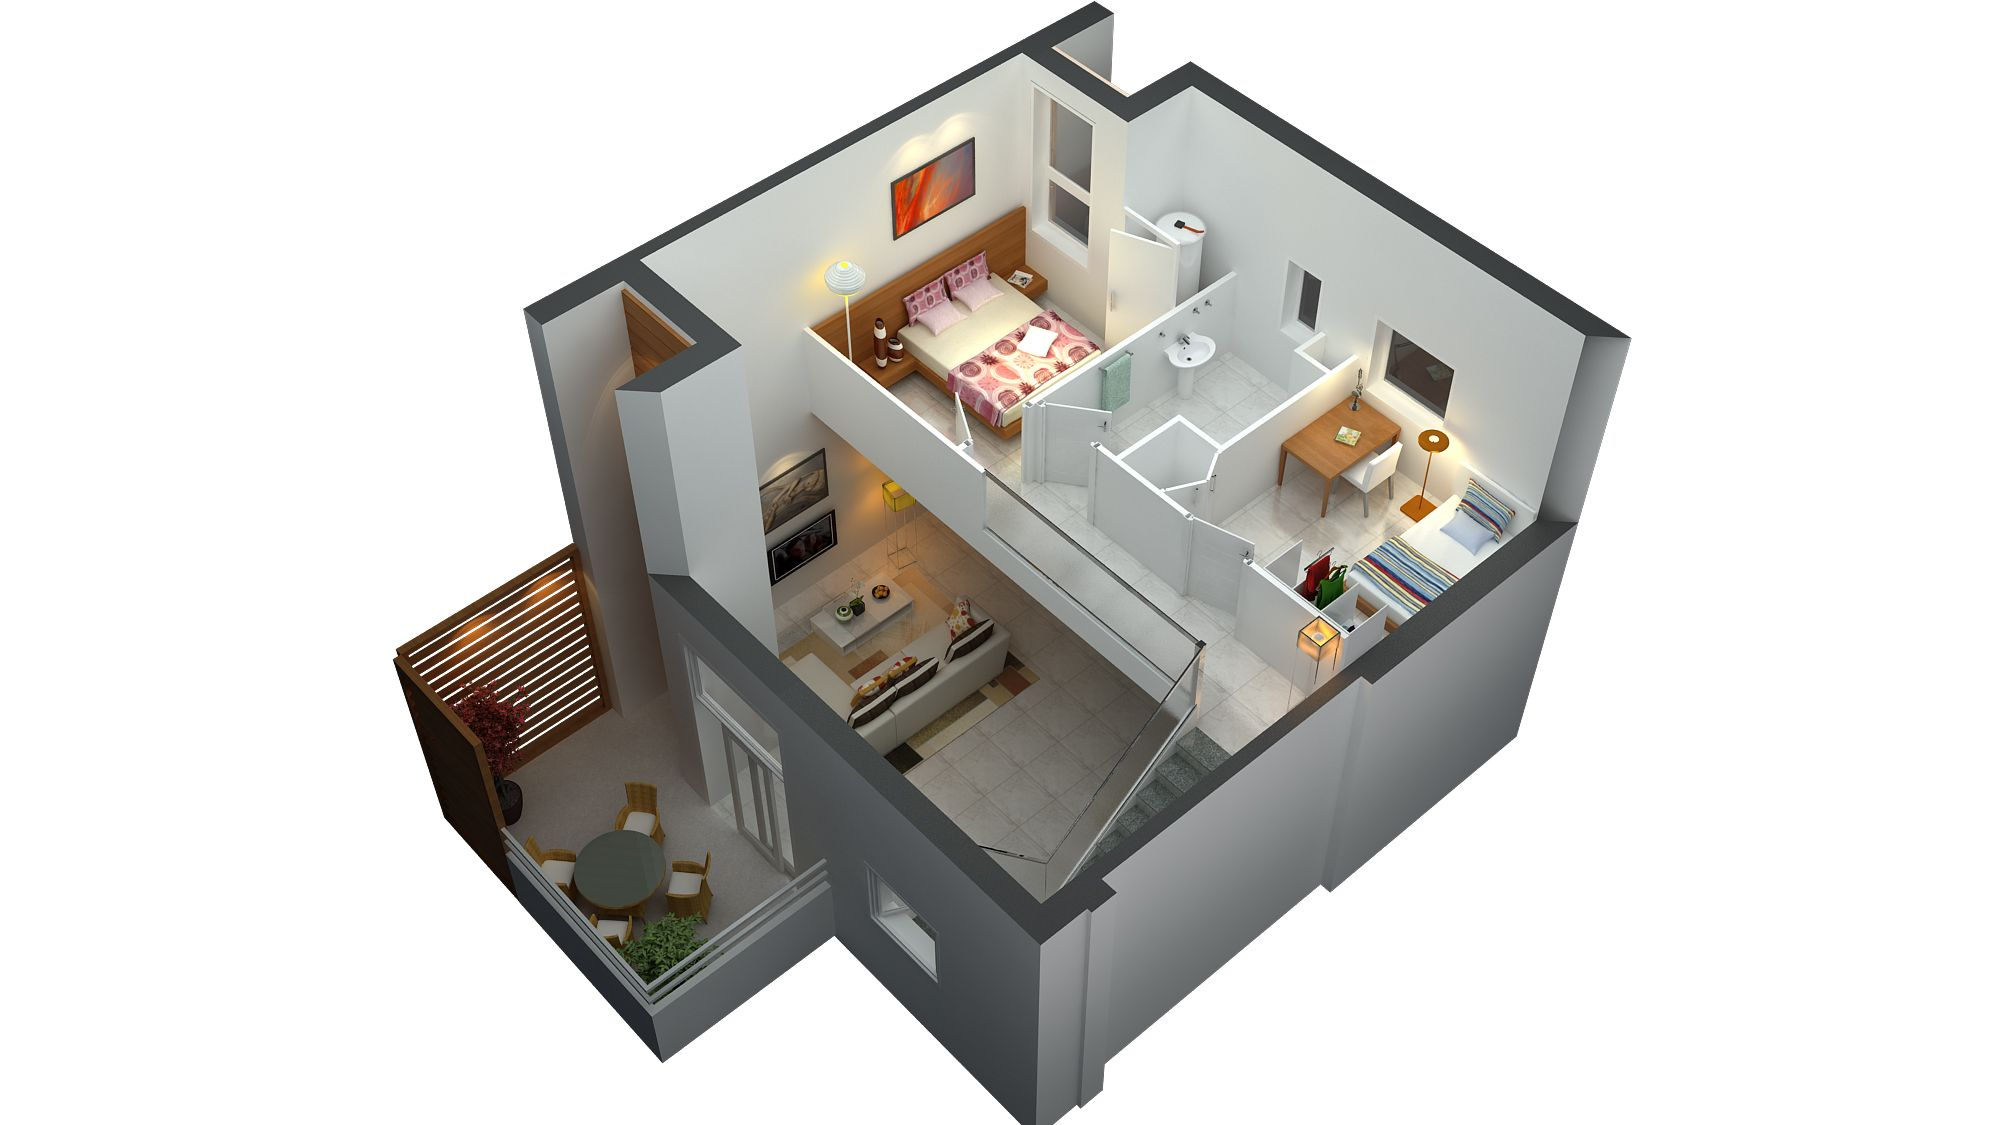 3d floor plan small house plans pinterest 3d for Small house design 3d